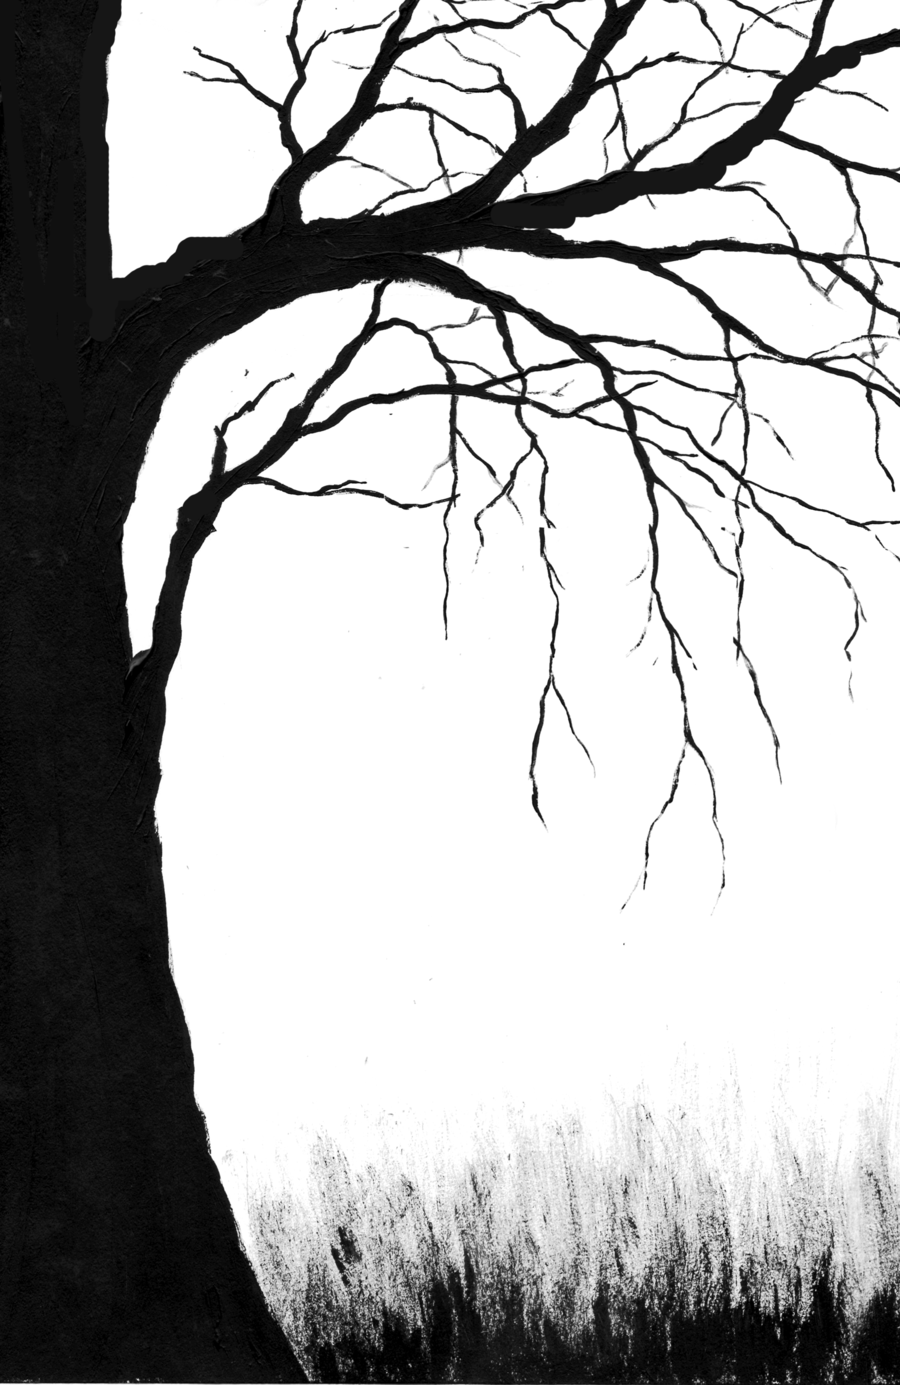 Spooky clipart branch Tree Creepy on Art Download